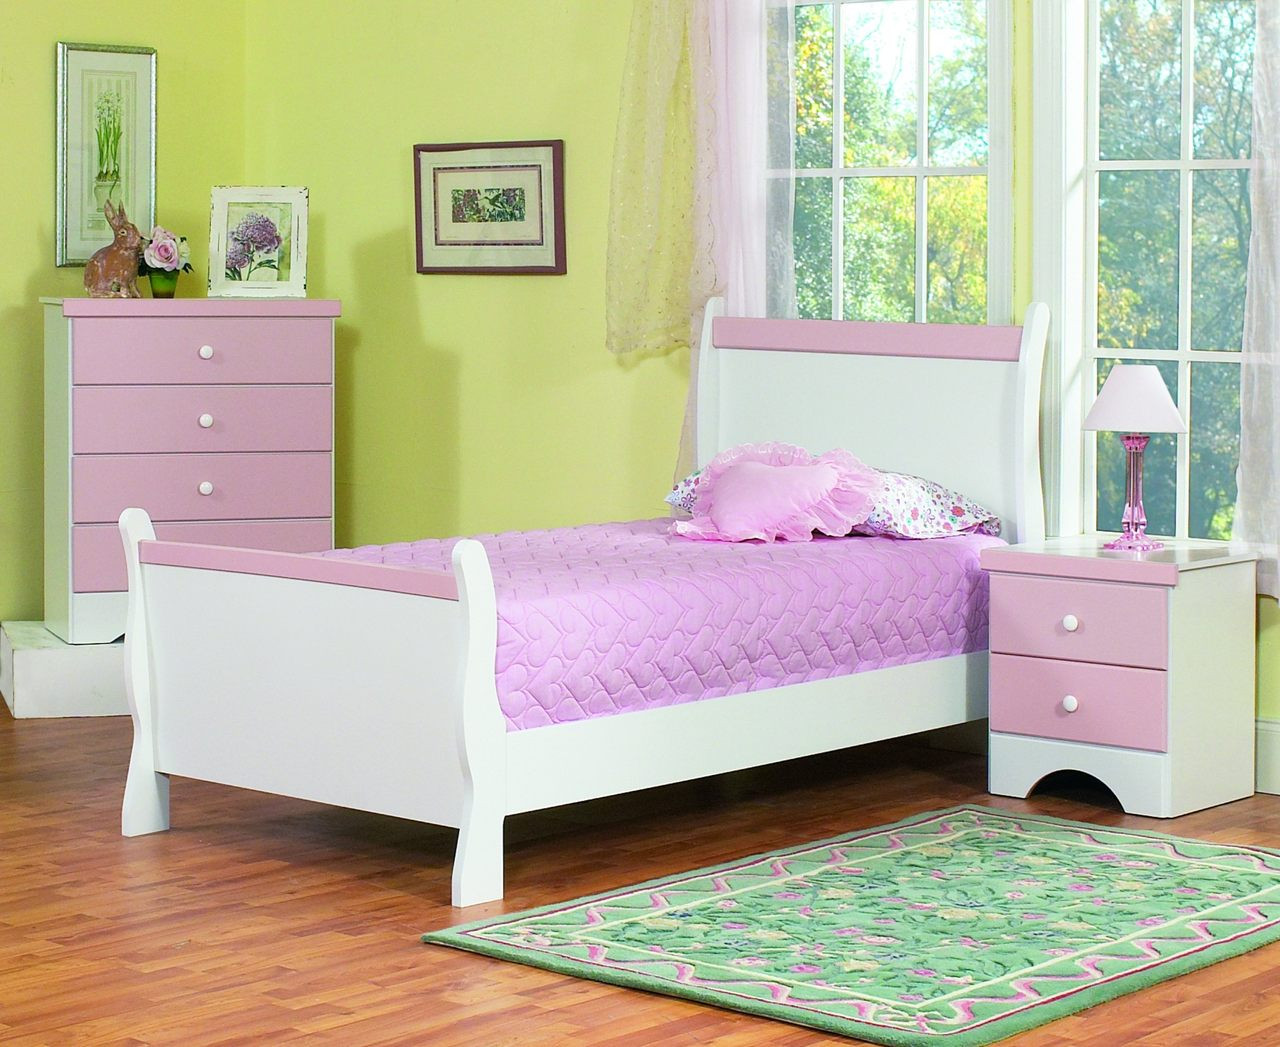 Best ideas about Kid Bedroom Sets . Save or Pin The Captivating Kids Bedroom Furniture Amaza Design Now.